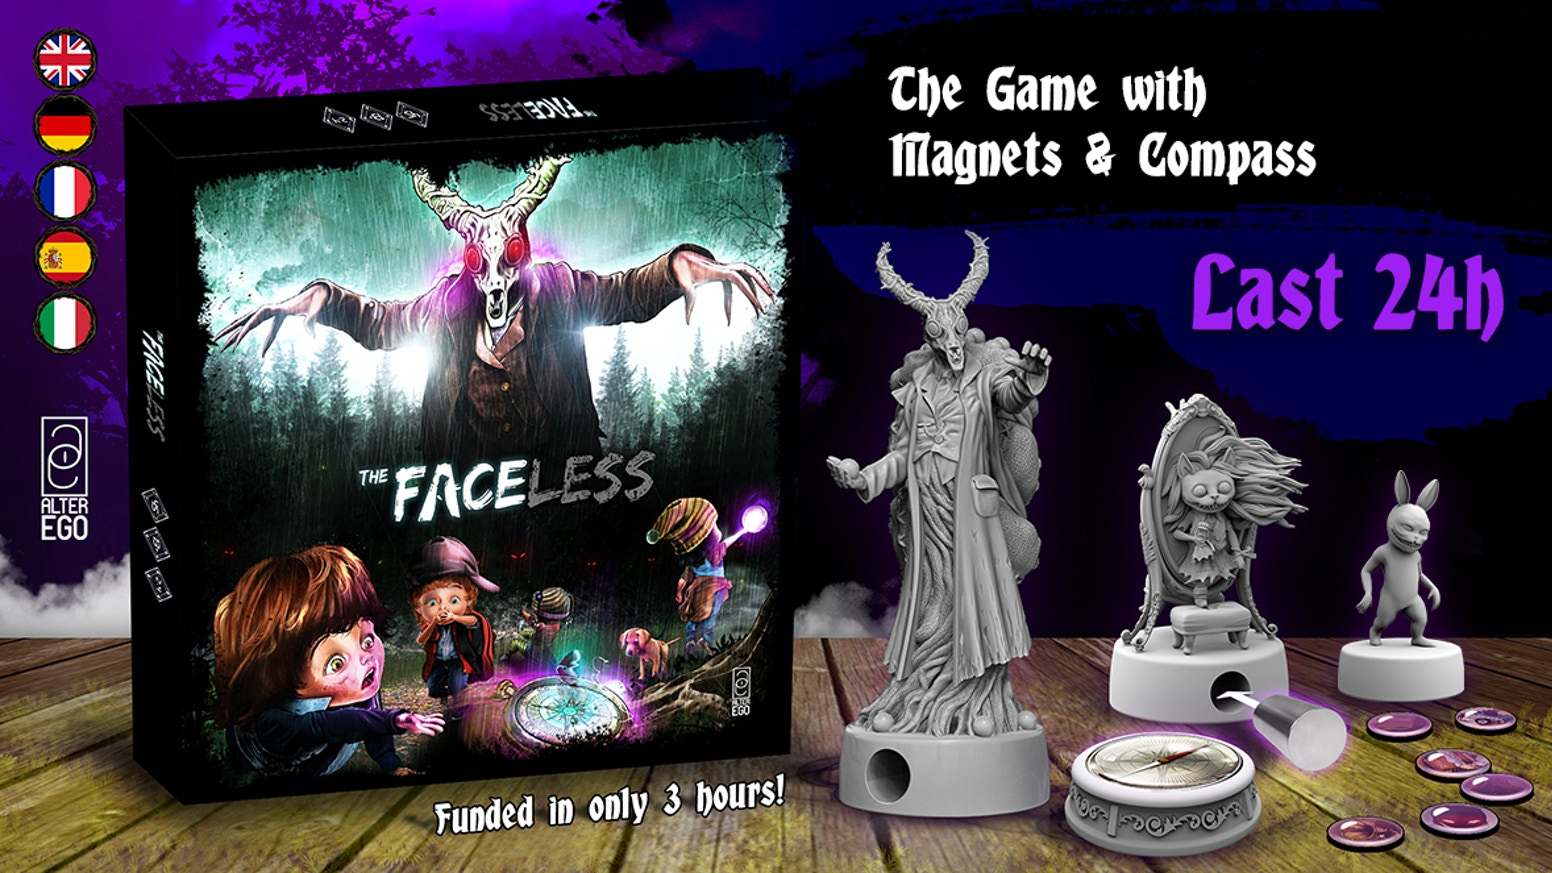 The Faceless is the top crowdfunding project launched today. The Faceless raised over $347112 from 5644 backers. Other top projects include Making Blu-ray of Michael Manring Japan Tour 2016, Premium Estate Chocolate Colombia Carsilk - Blissful Desire, A wrestling-based film company; presenting: